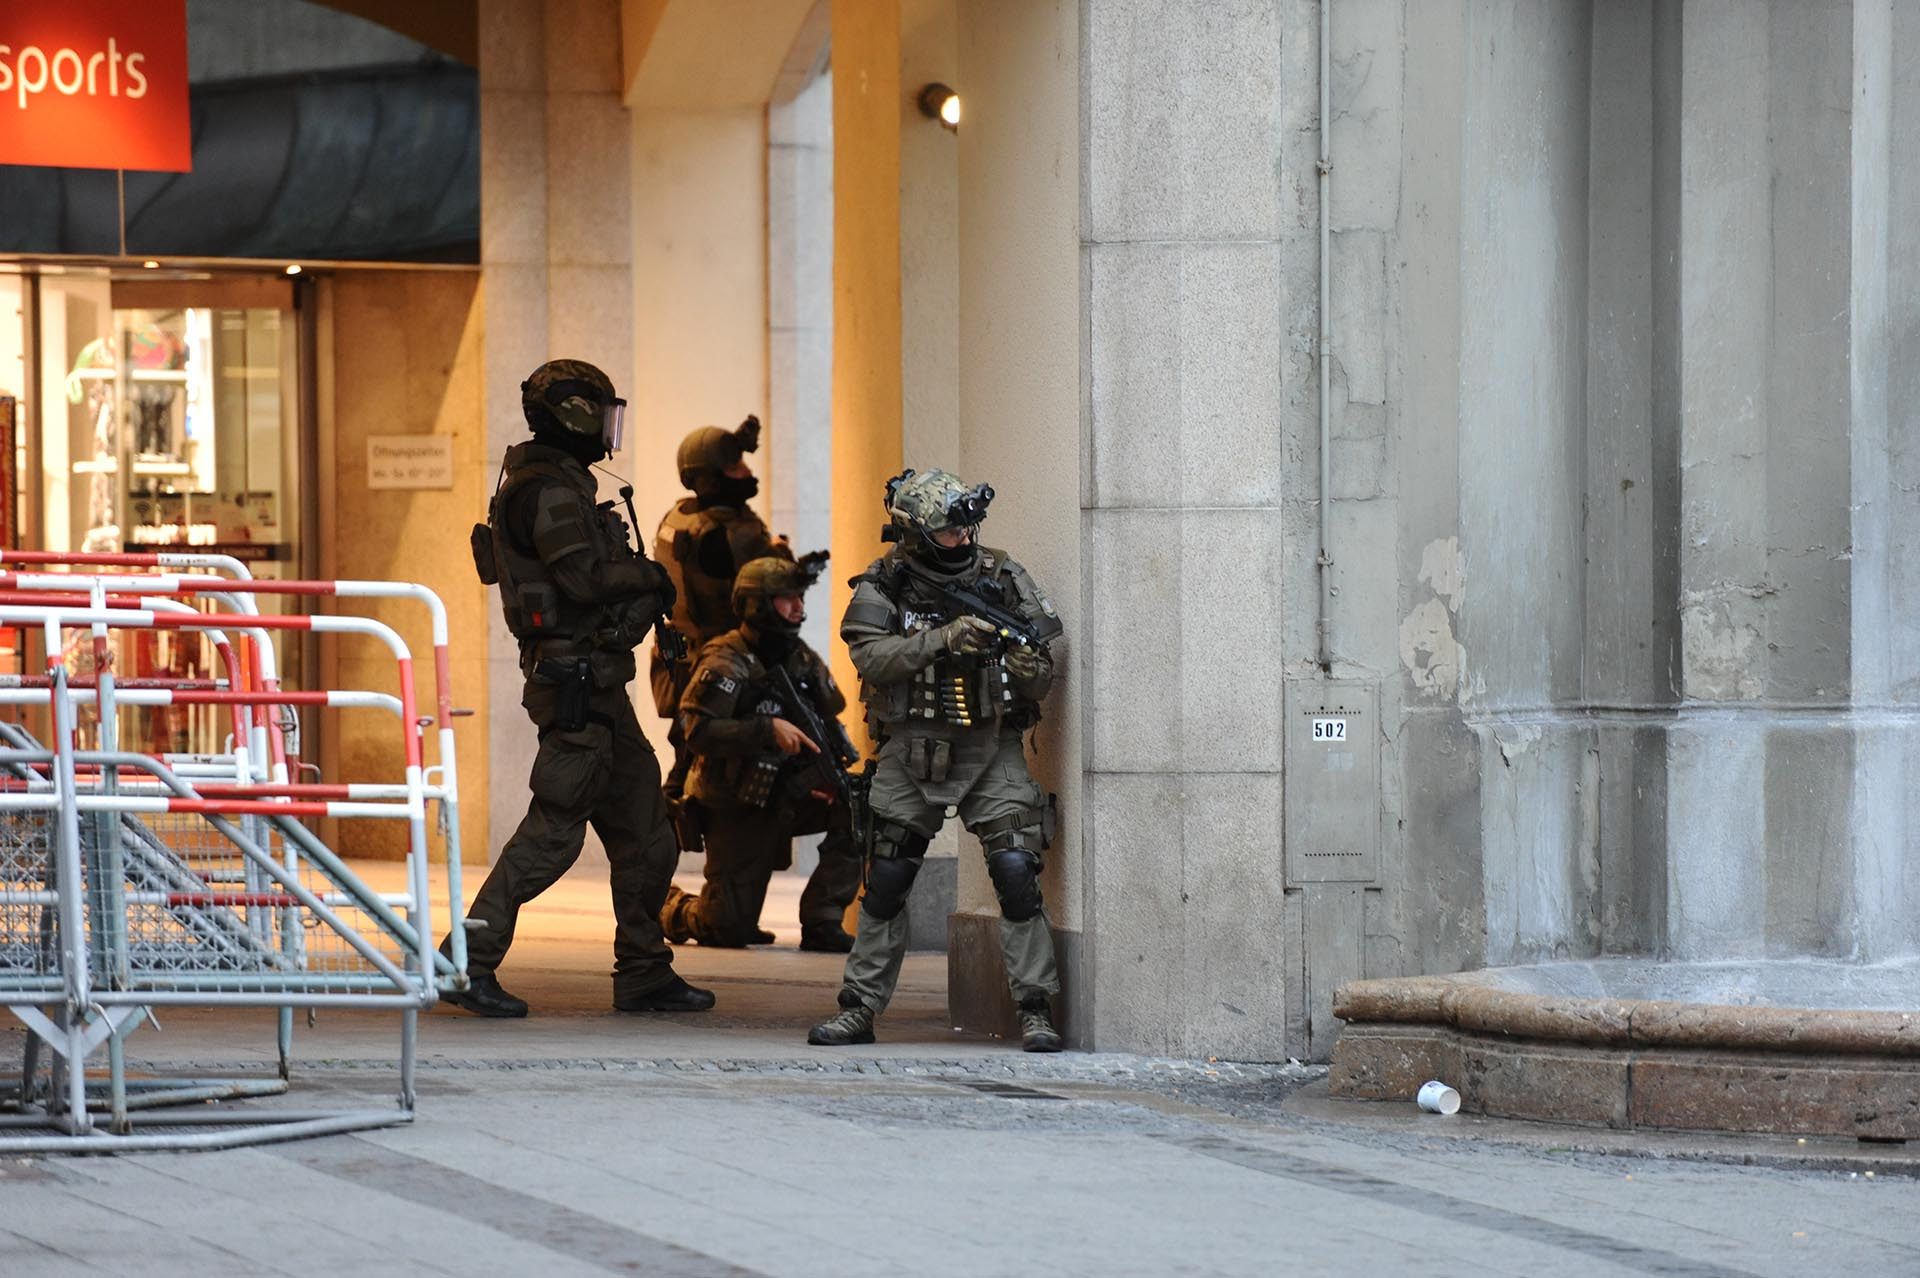 Heavily armed police forces operate at Karlsplatz (Stachus) square after a shooting in the Olympia shopping centre was reported in Munich, southern Germany, Friday, July 22, 2016. (Andreas Gebert/dpa via AP)